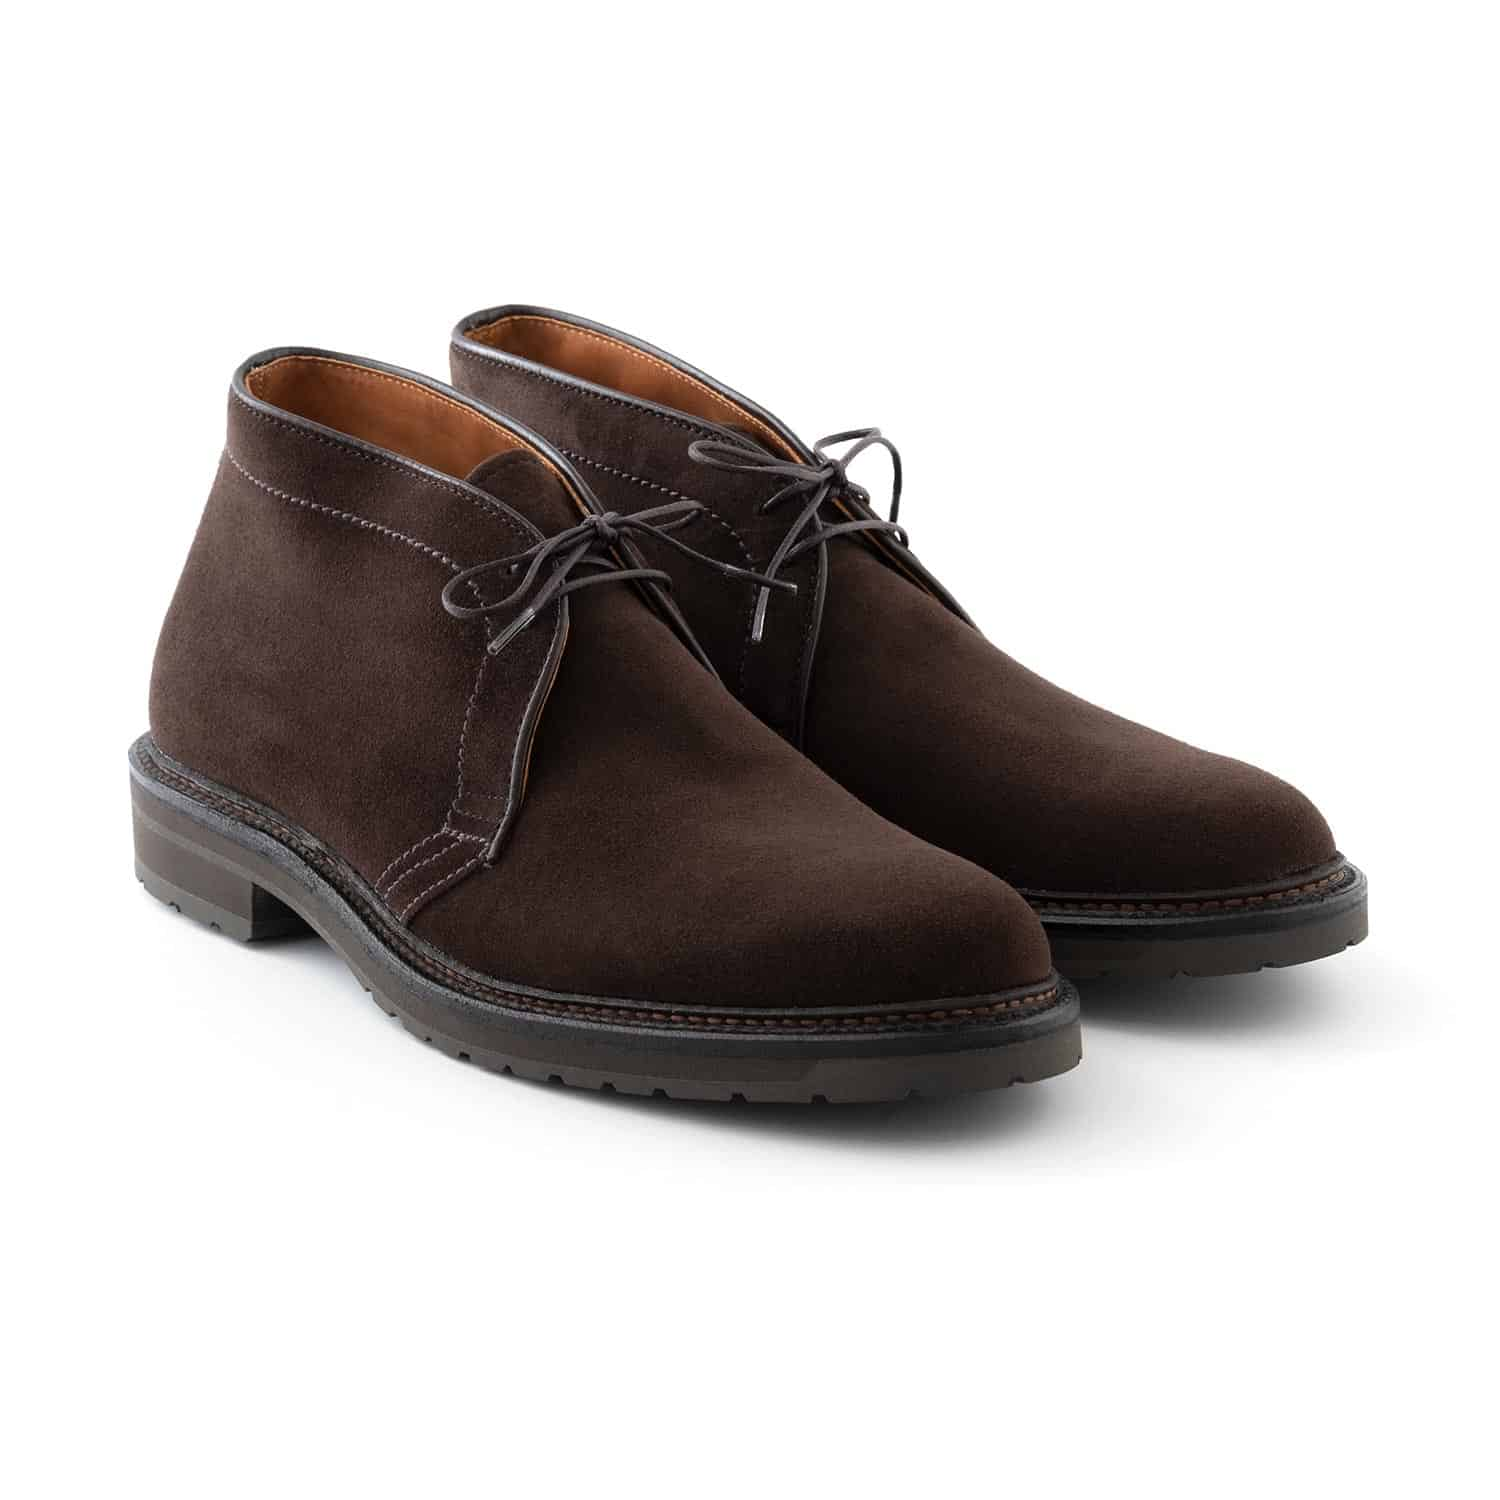 Alden 1273S Brown Suede Chukka Boot